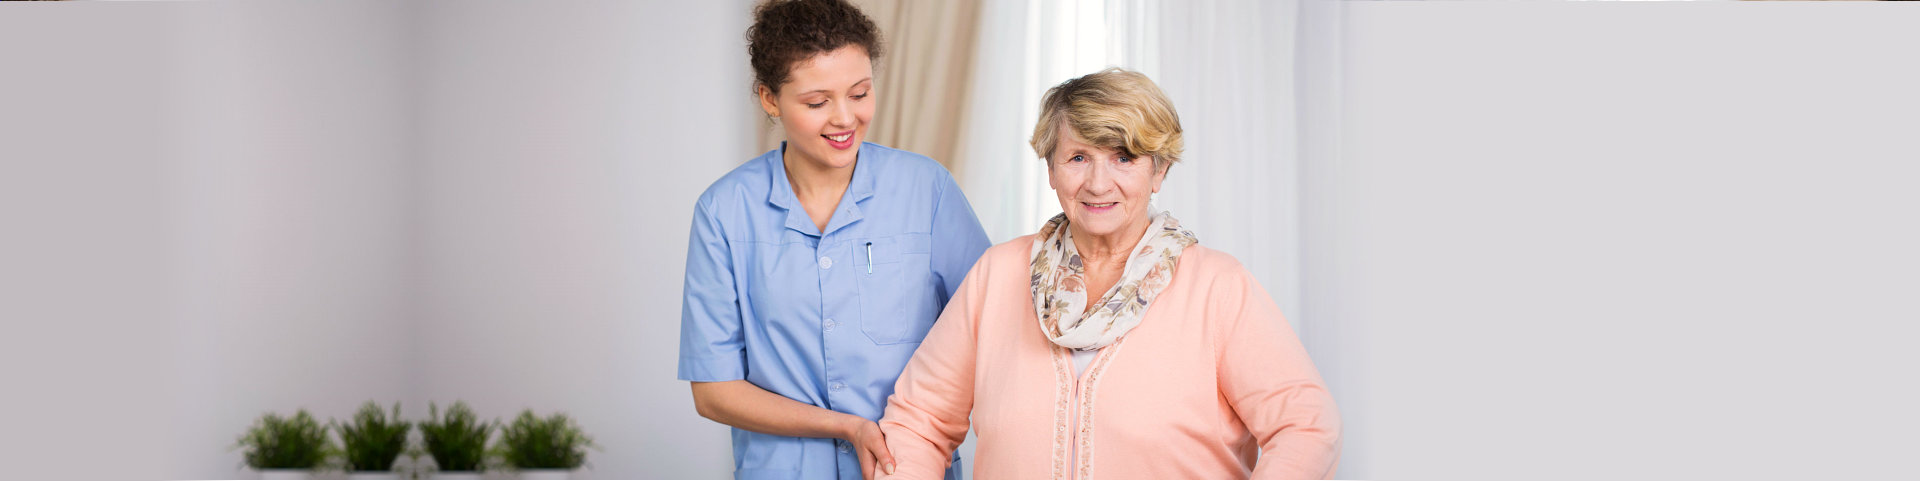 caregiver assisting old woman in walking